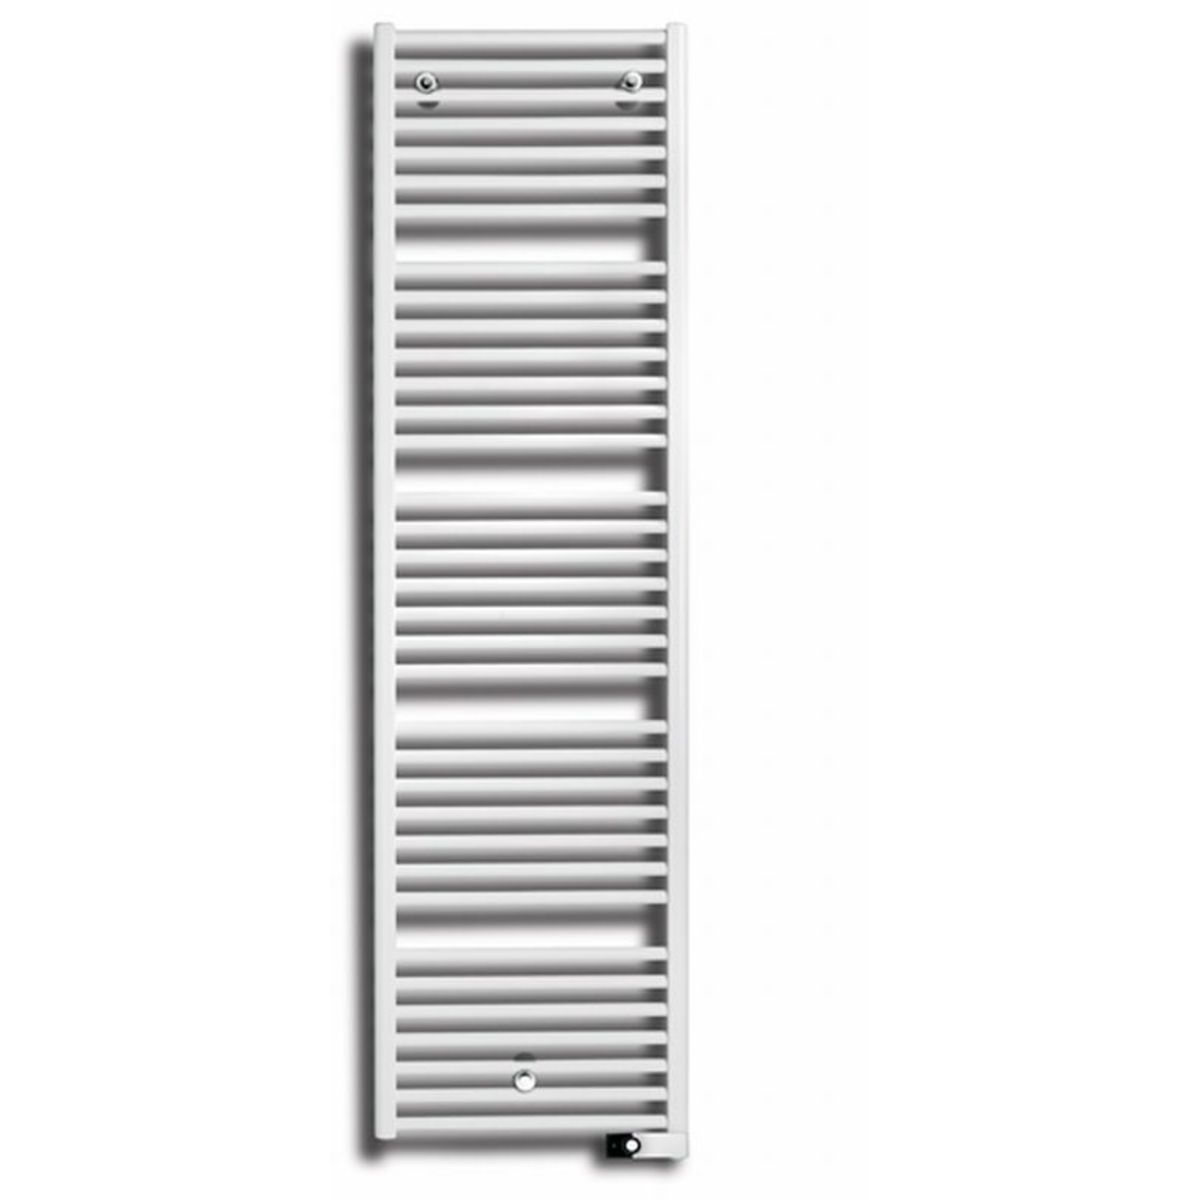 Complete Badkamer Outlet Vasco Hedria Hd El Electrische Radiator 500x1330mm Wit